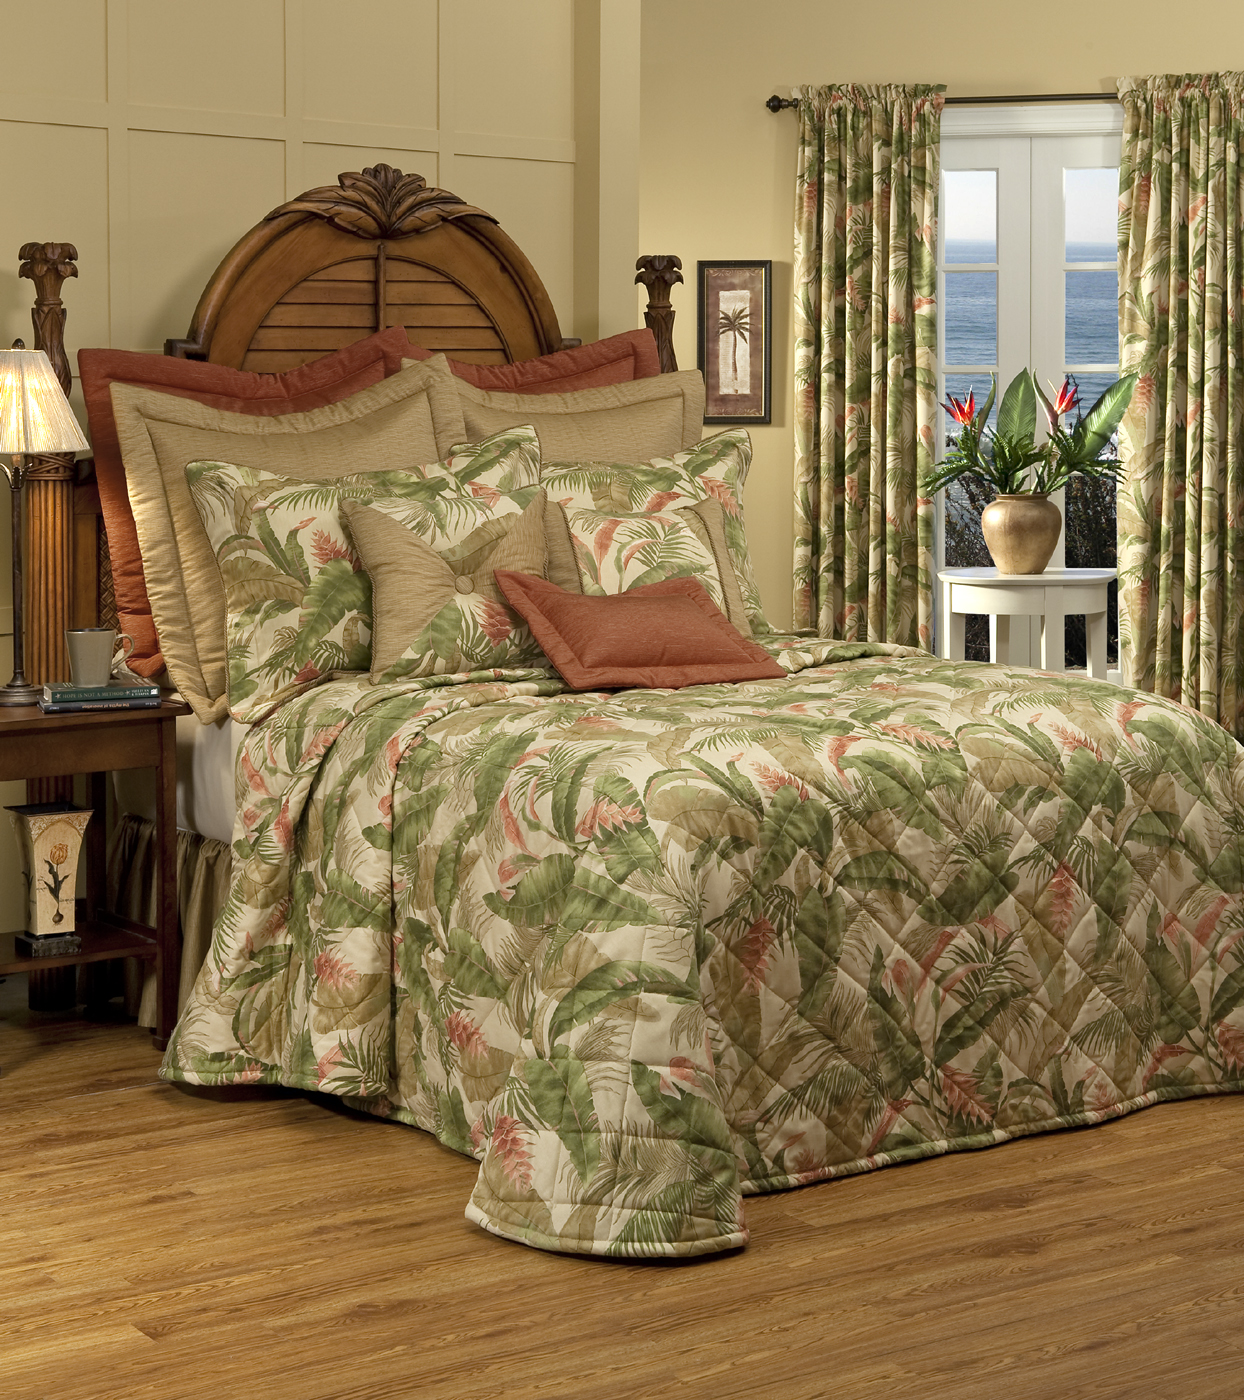 Quilted Bedspread La Selva Natural By Thomasville